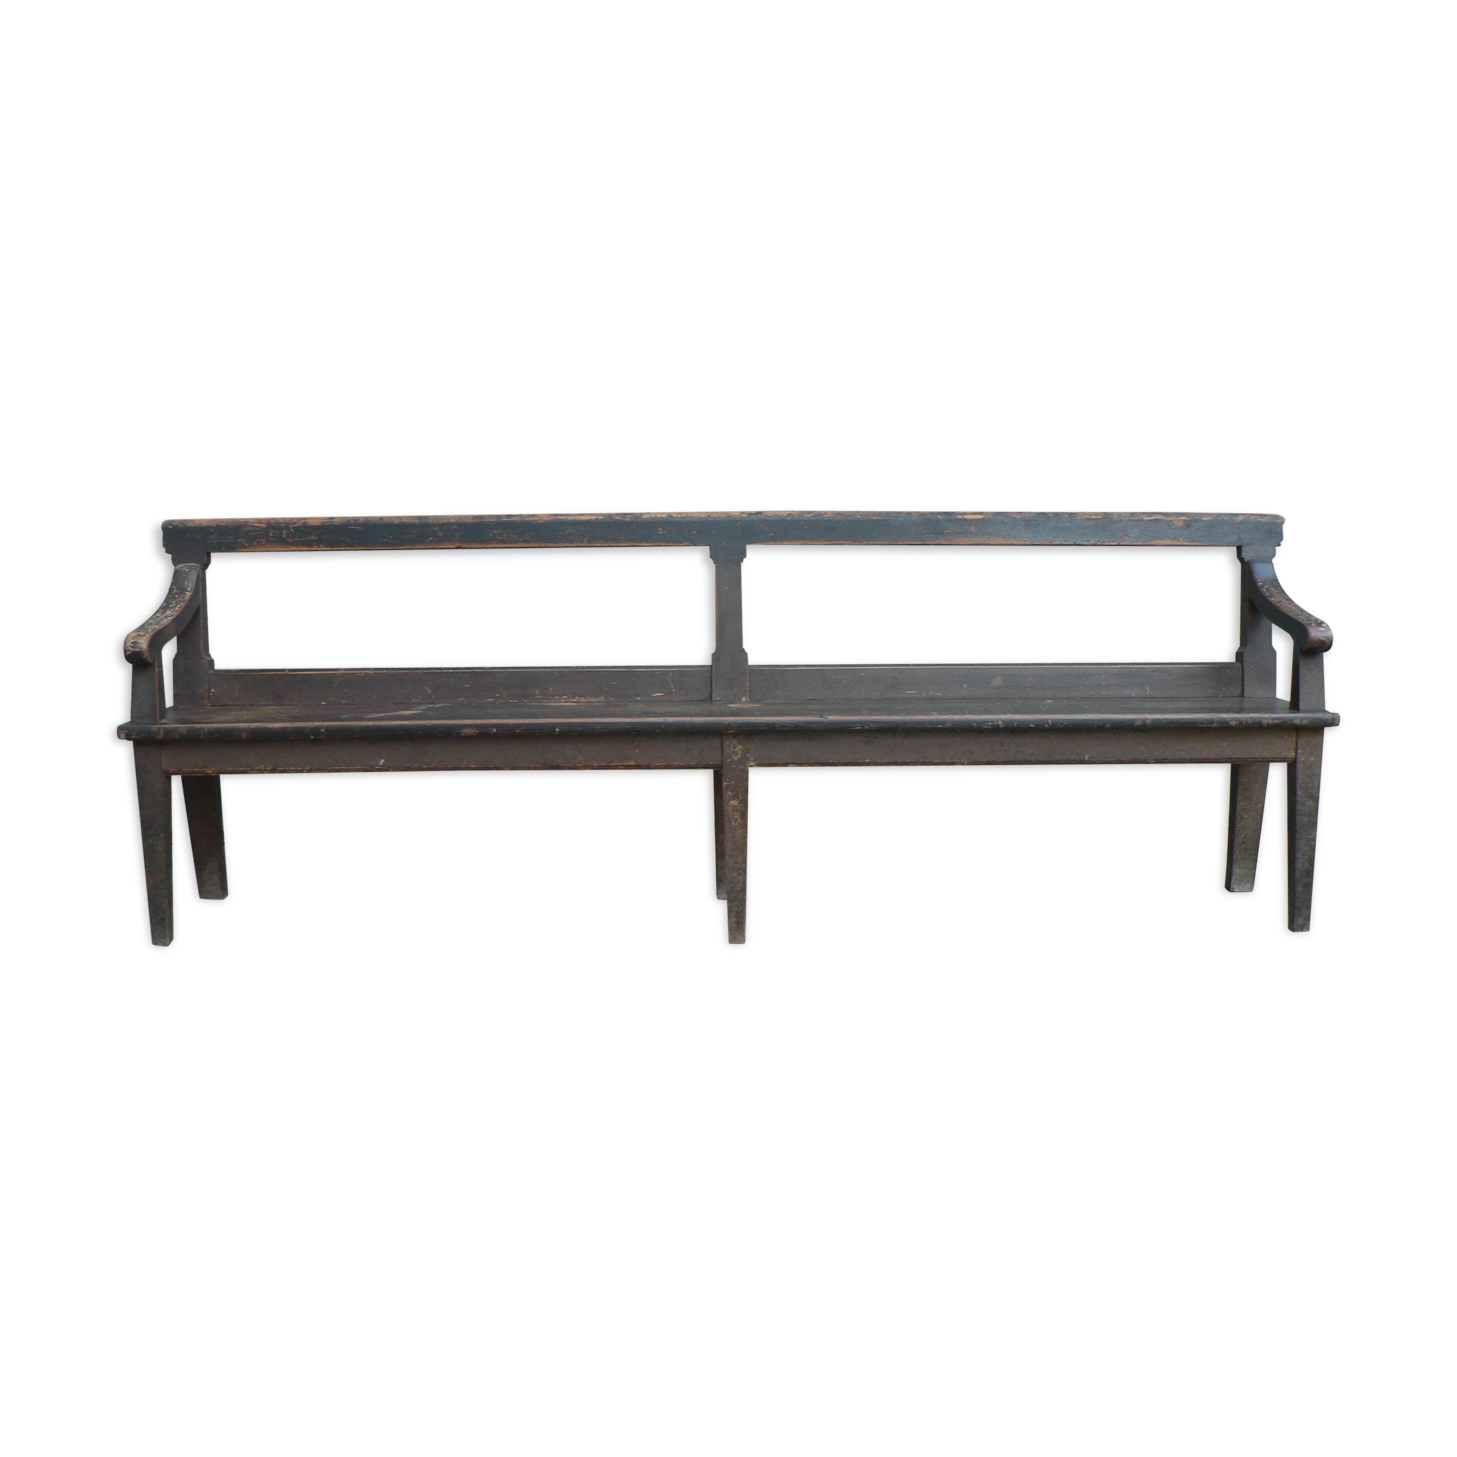 Banc De Ferme Ancien Grande Table De Monastre Ancienne Table De  # Banc De Ferme Dossier